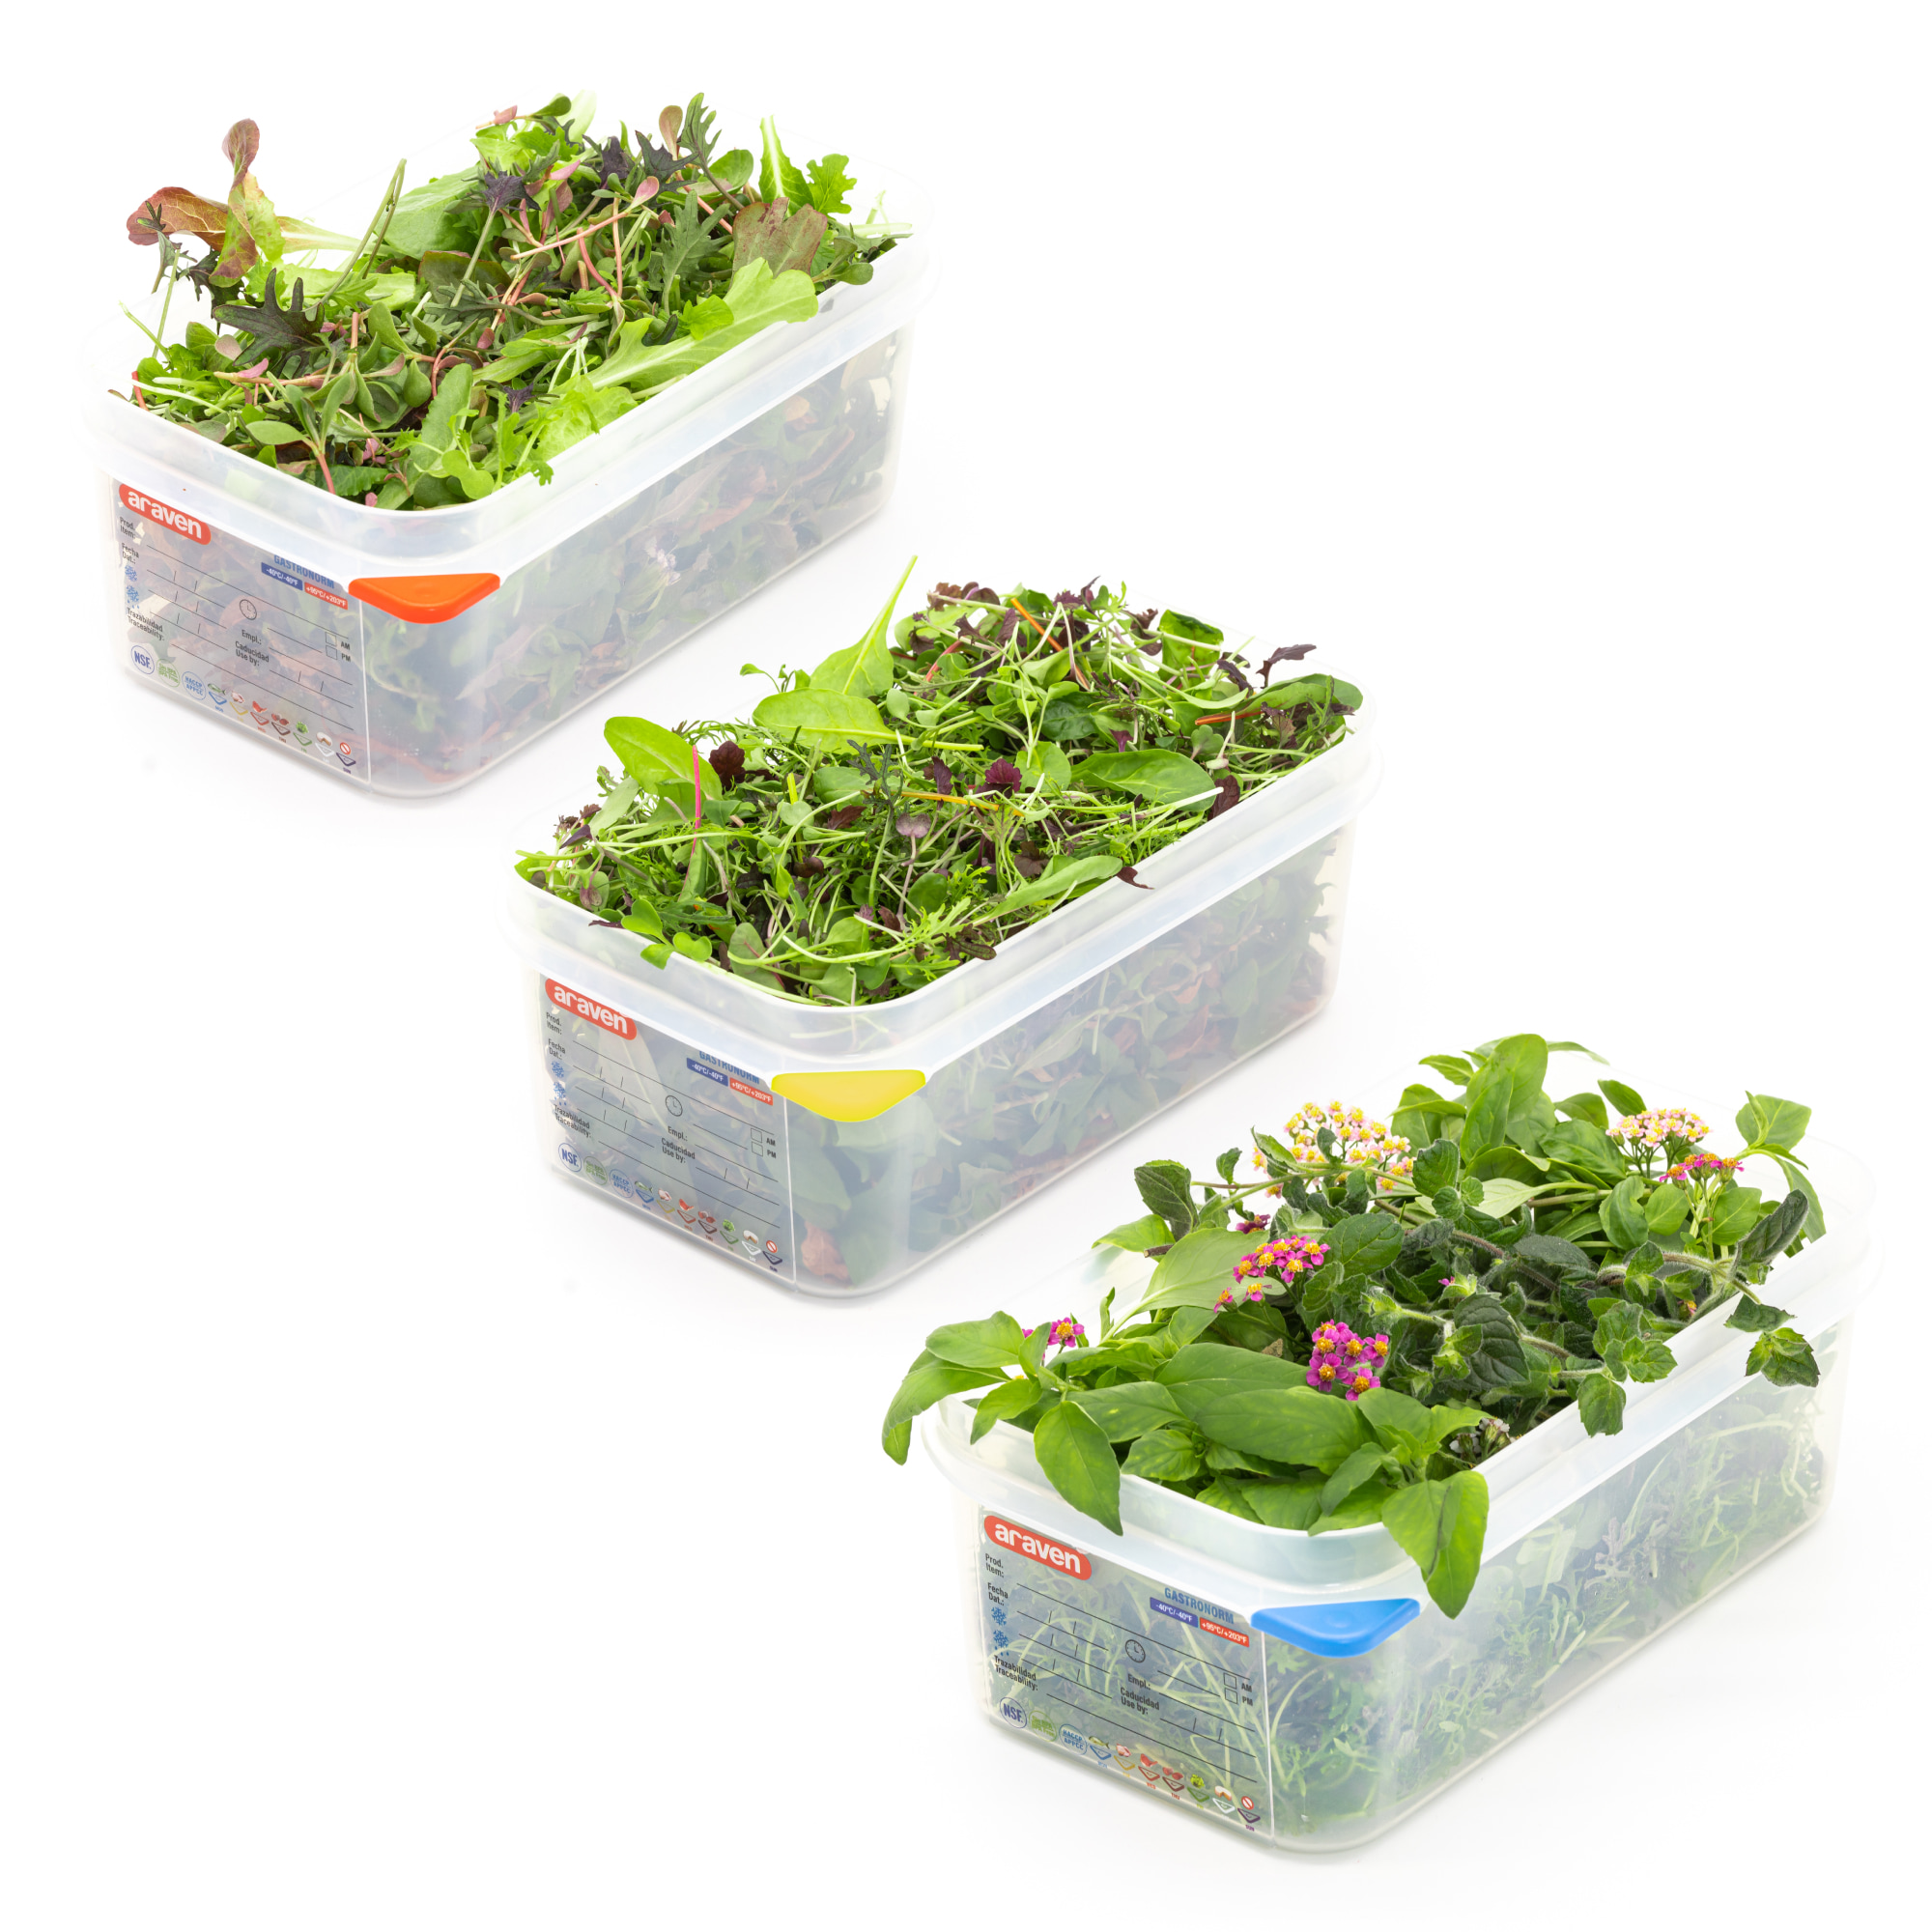 Our baby greens, micro greens, herbs & flowers